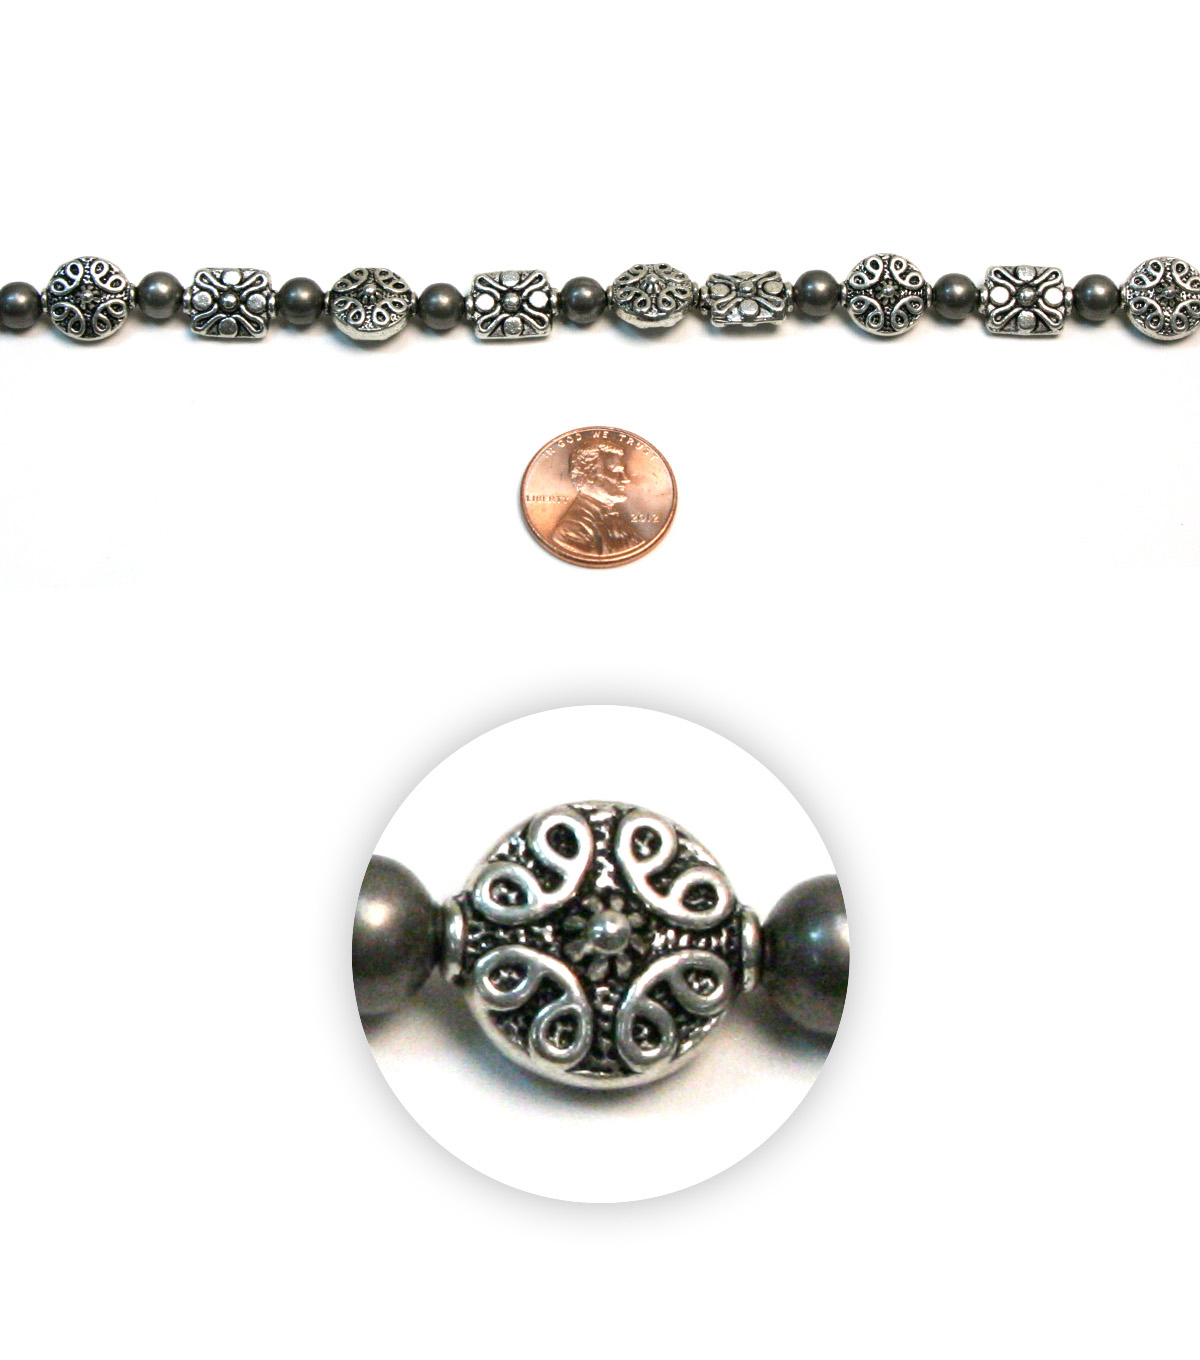 Sulyn Ornament Beads Strand-Antique Silver